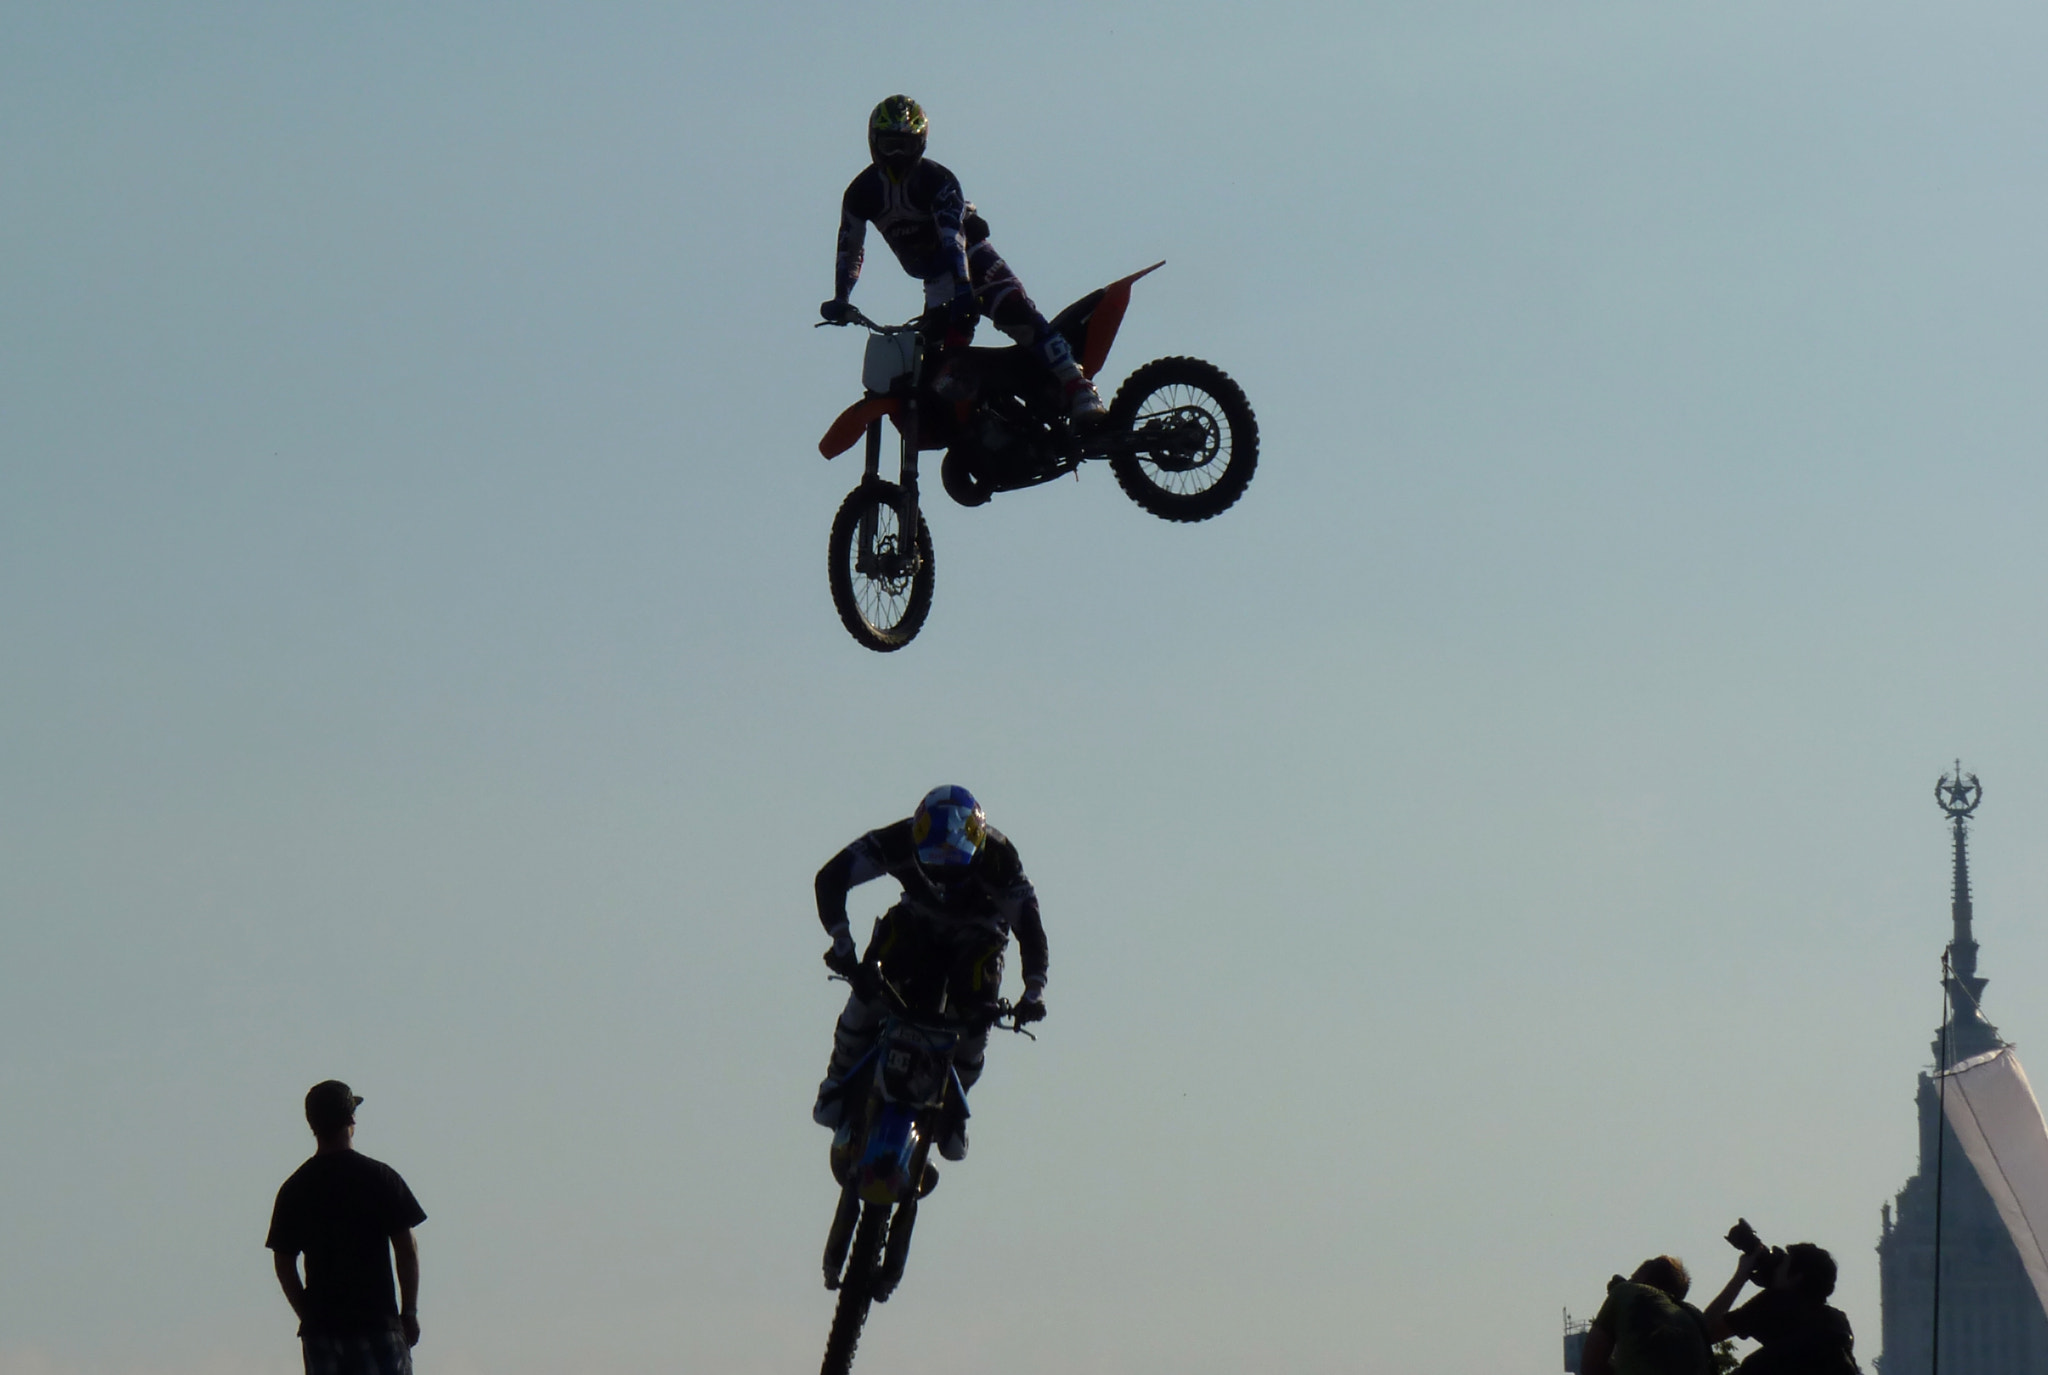 Photograph Freestyle motocross by Danila Smit on 500px